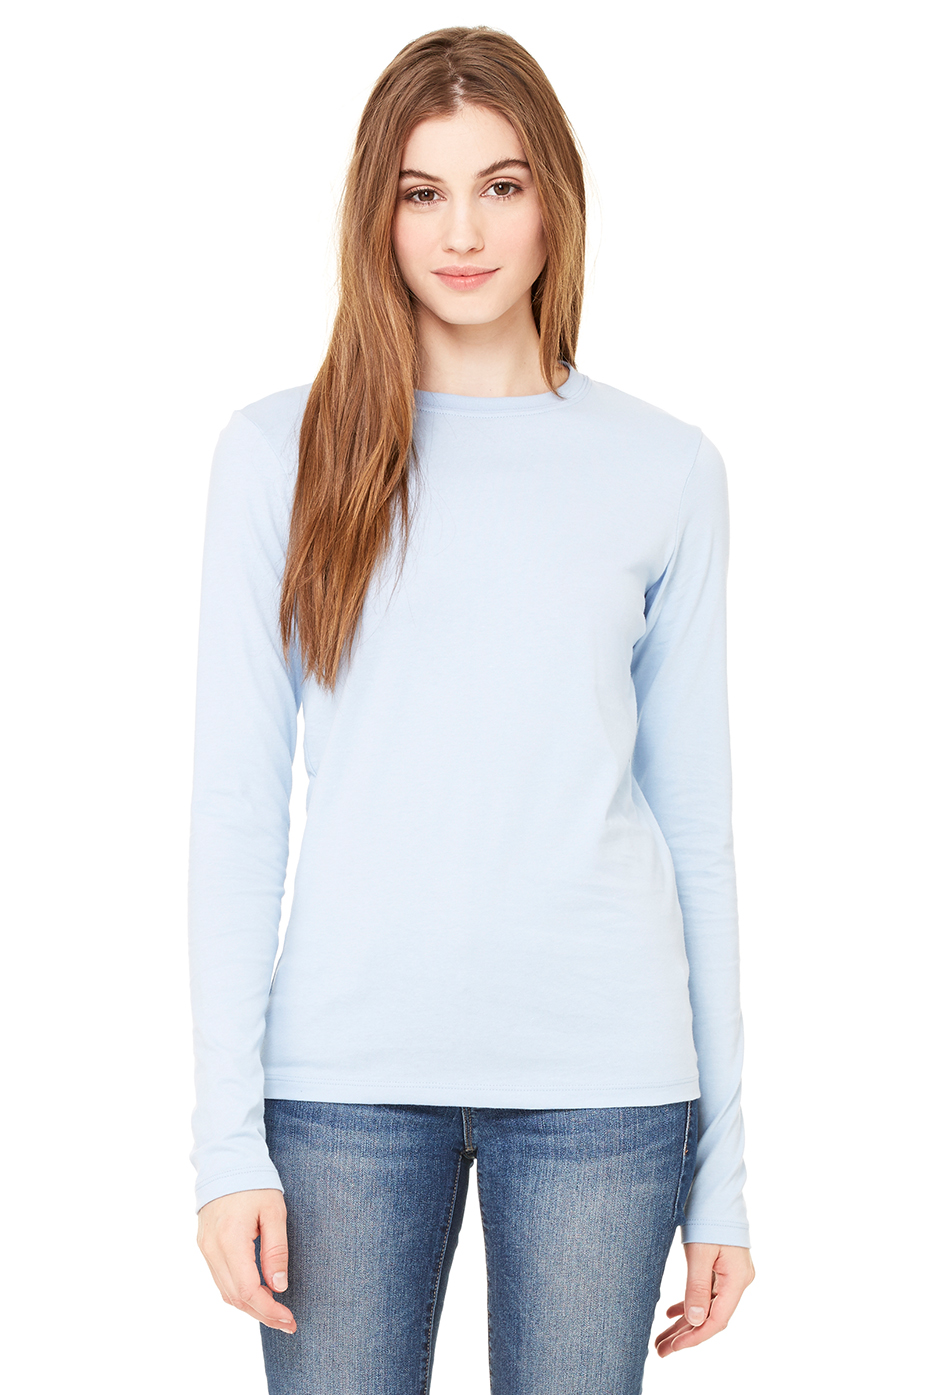 Women's long sleeve shirts and tops come in a wide variety of styles, colors, and materials to satisfy any shopper. From cardigans and sweatshirts to basic tees and blouses, JCPenney has what you need to stay warm this season.